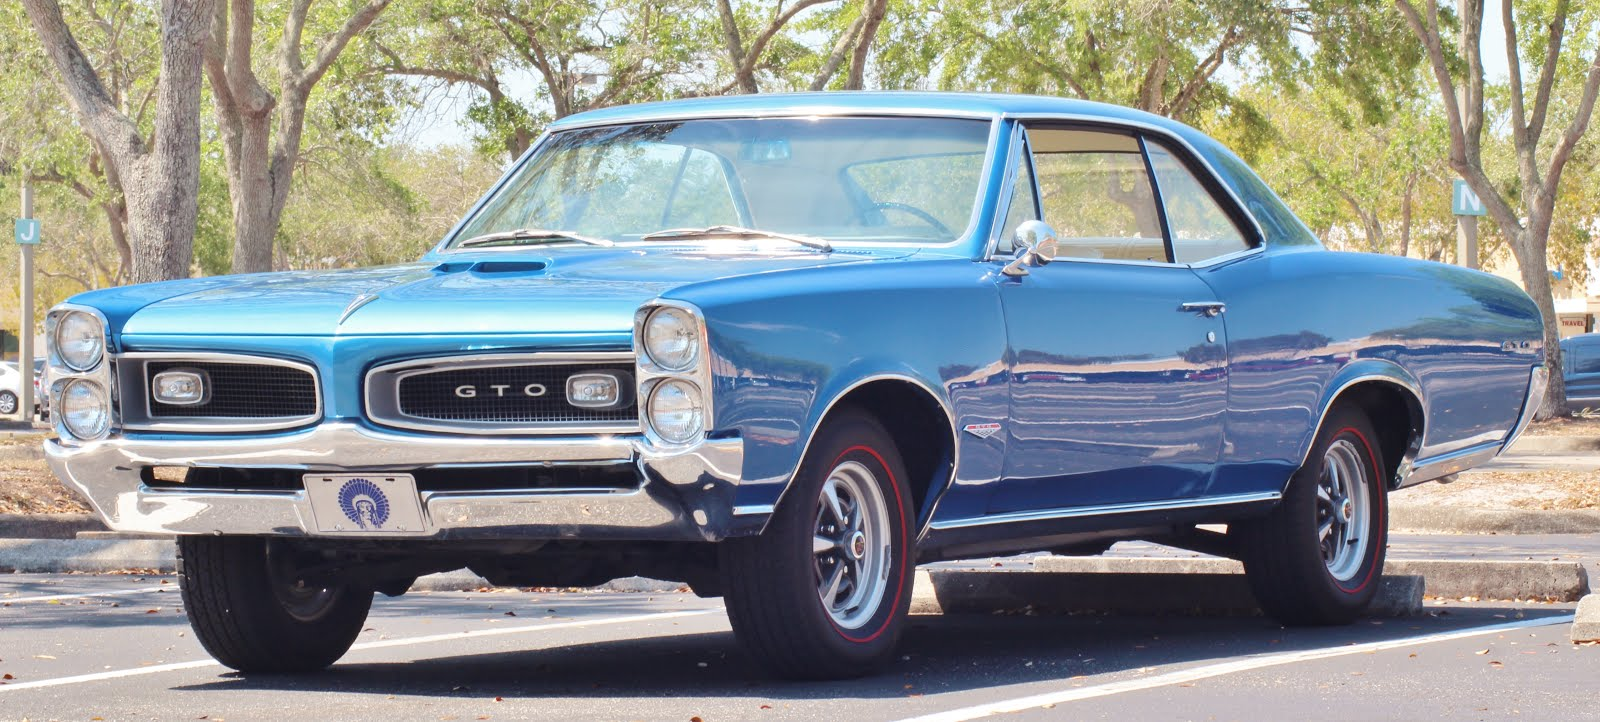 1966 PONTIAC GTO ( 389ci / 4-speed ) 250 original MILES ! / FOR $ALE ( 517 ) 881 - 2331